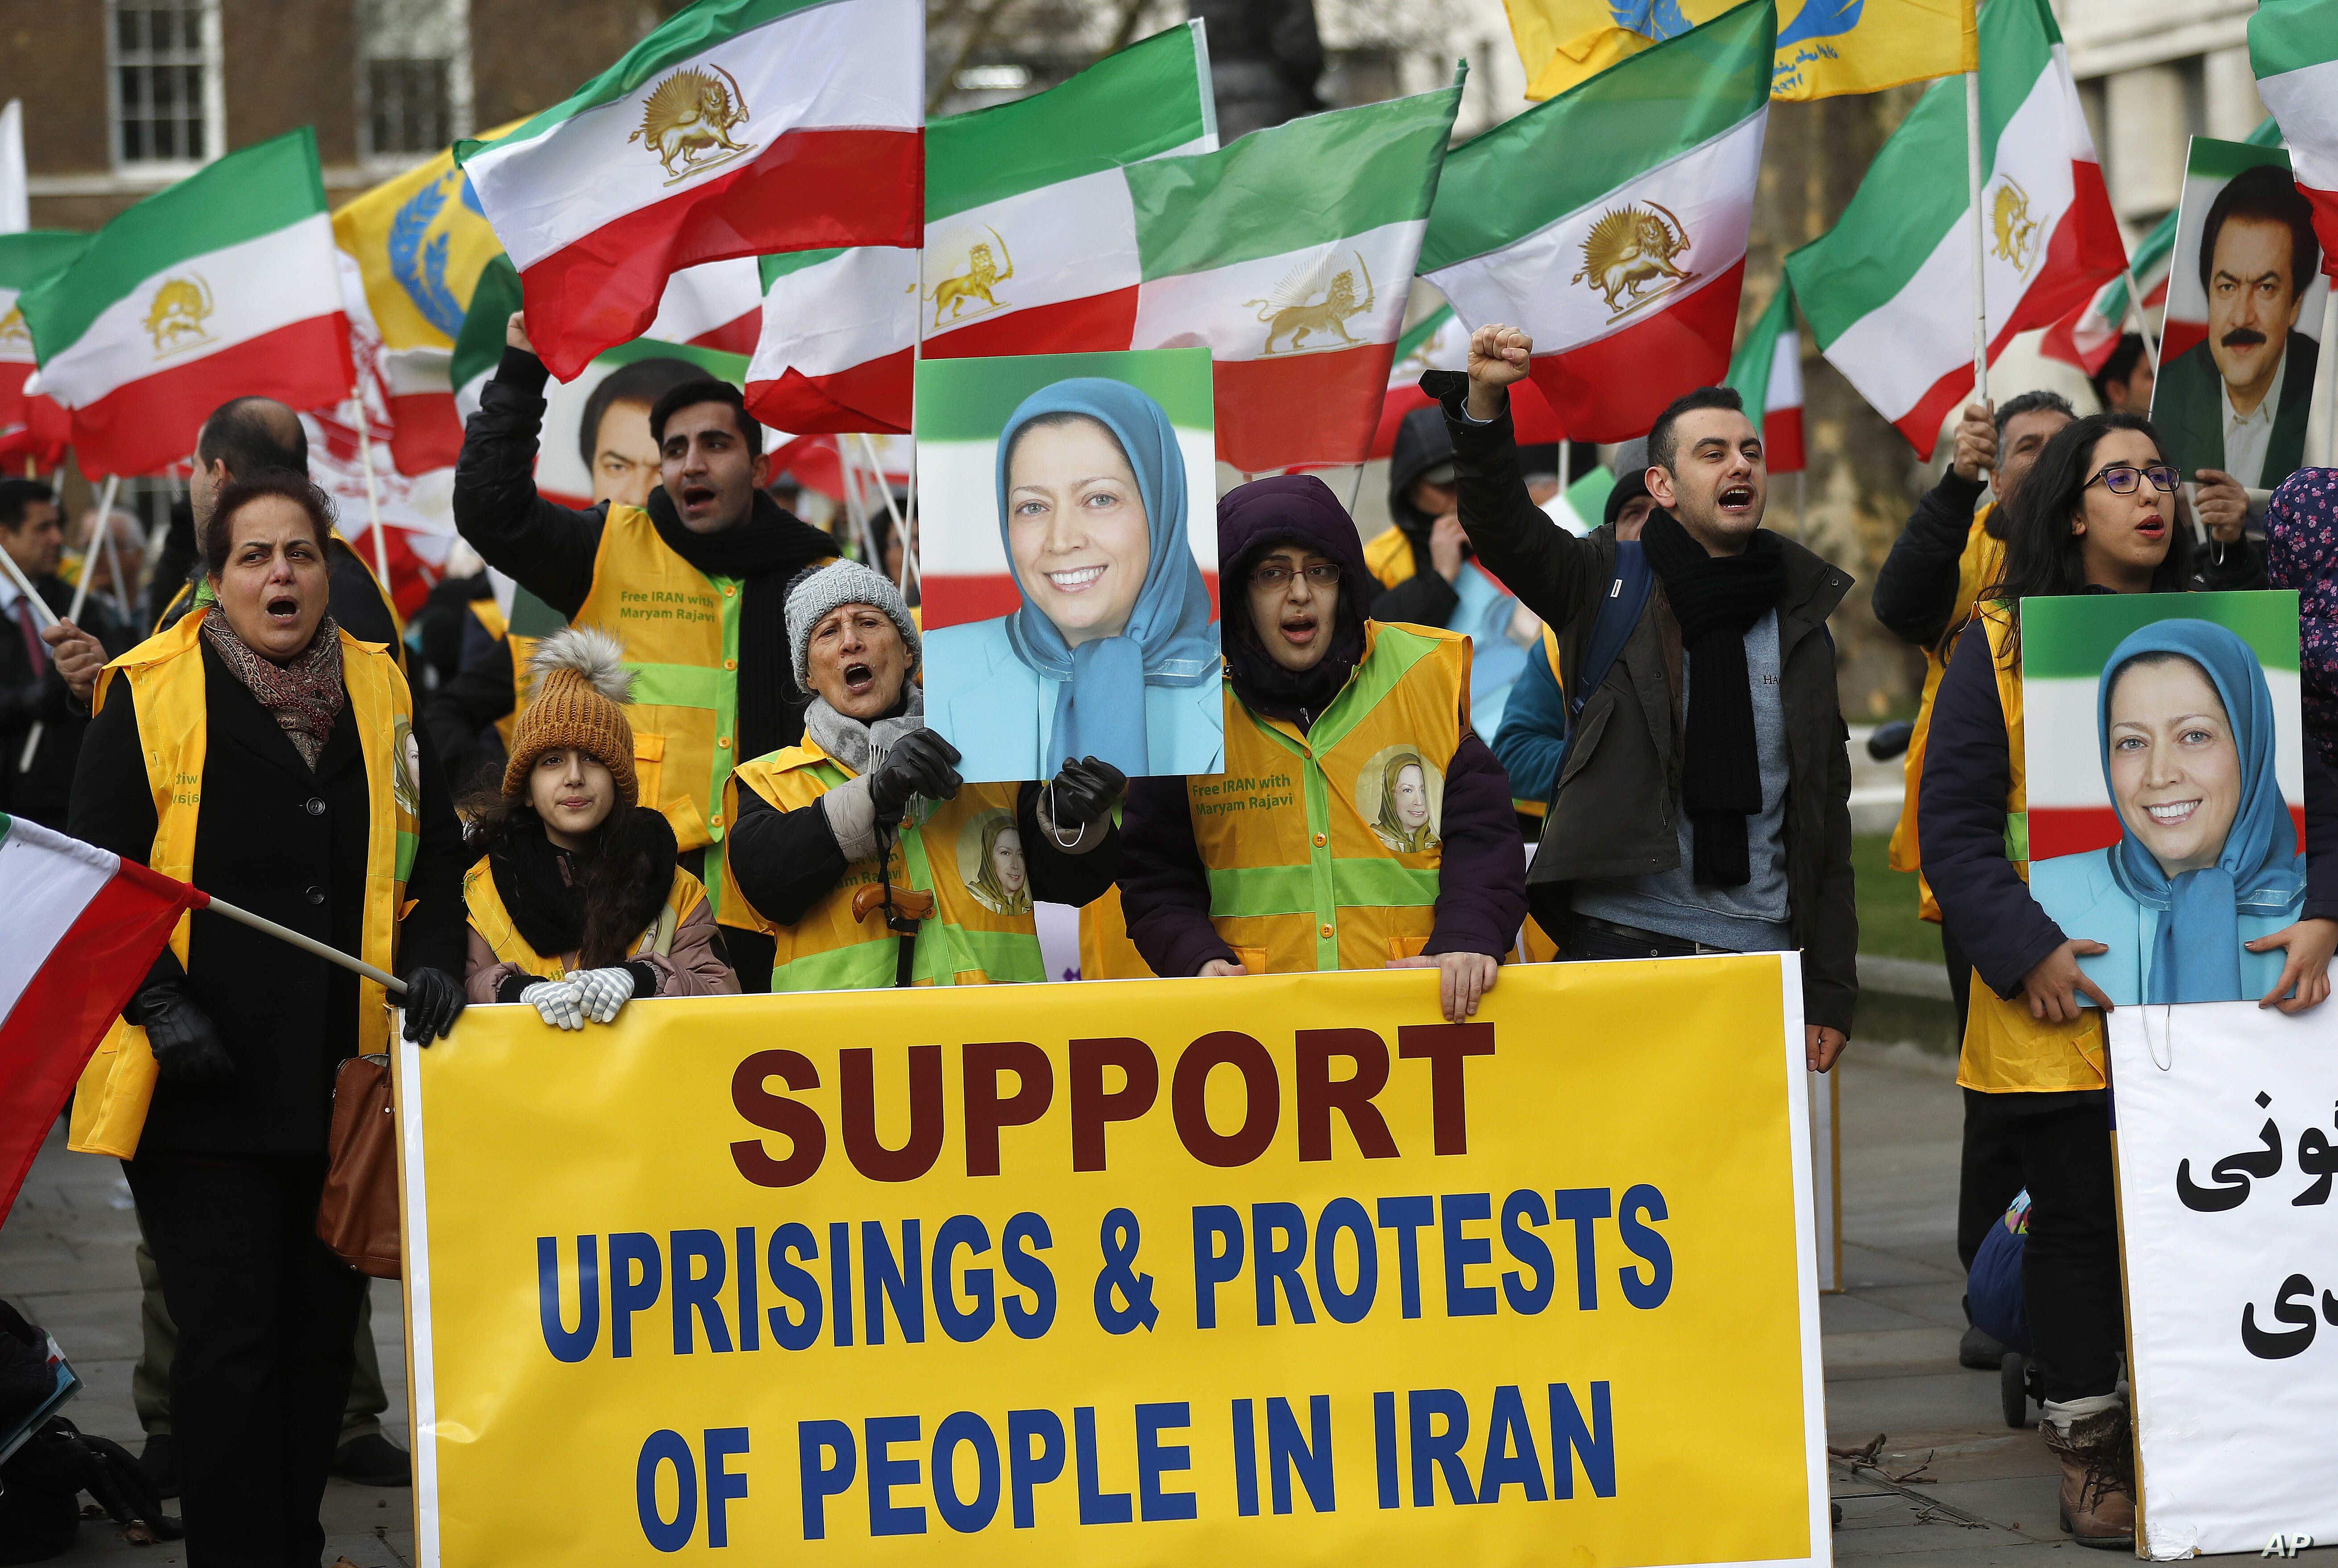 The Anglo-Iranian communities, supporters of Iran's democratic opposition, the National Council of Resistance of Iran (NCRI) and main organised opposition movement PMOI, hold a rally opposite the entrance of 10 Downing Street in London, Jan. 4, 2018.